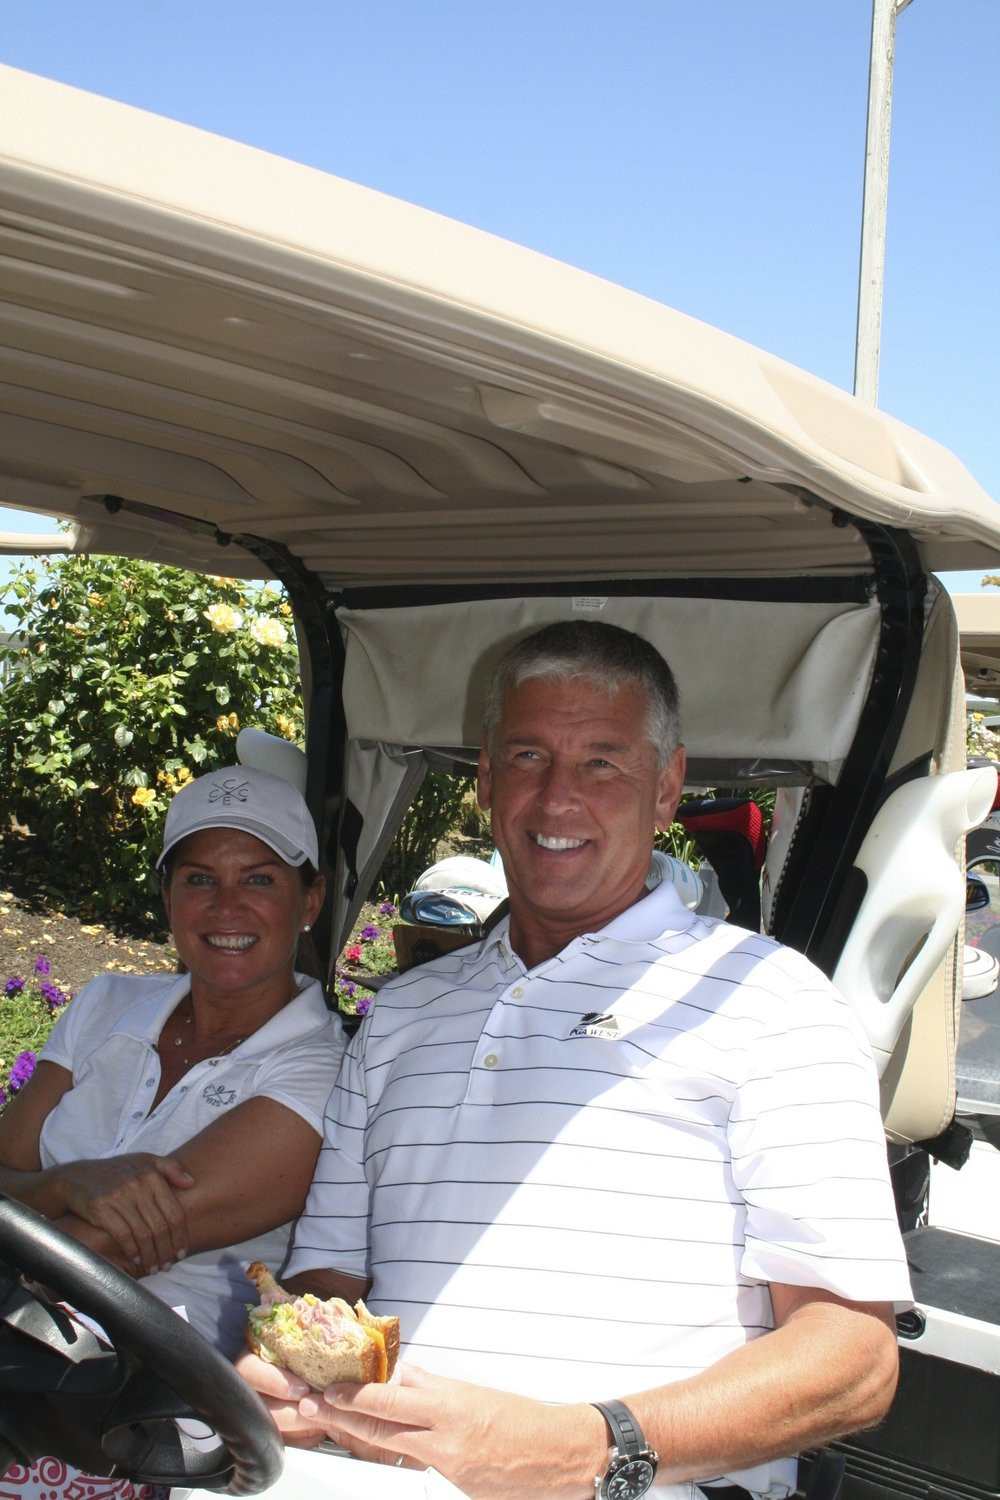 Guten Foods President Suzeanne Mager (left) and Vice President, Rene Briede, at the annual Guten Foods Golf Tournament at Langdon Farms Golf Club to raise money for Zenger Farm and New City Initiative .